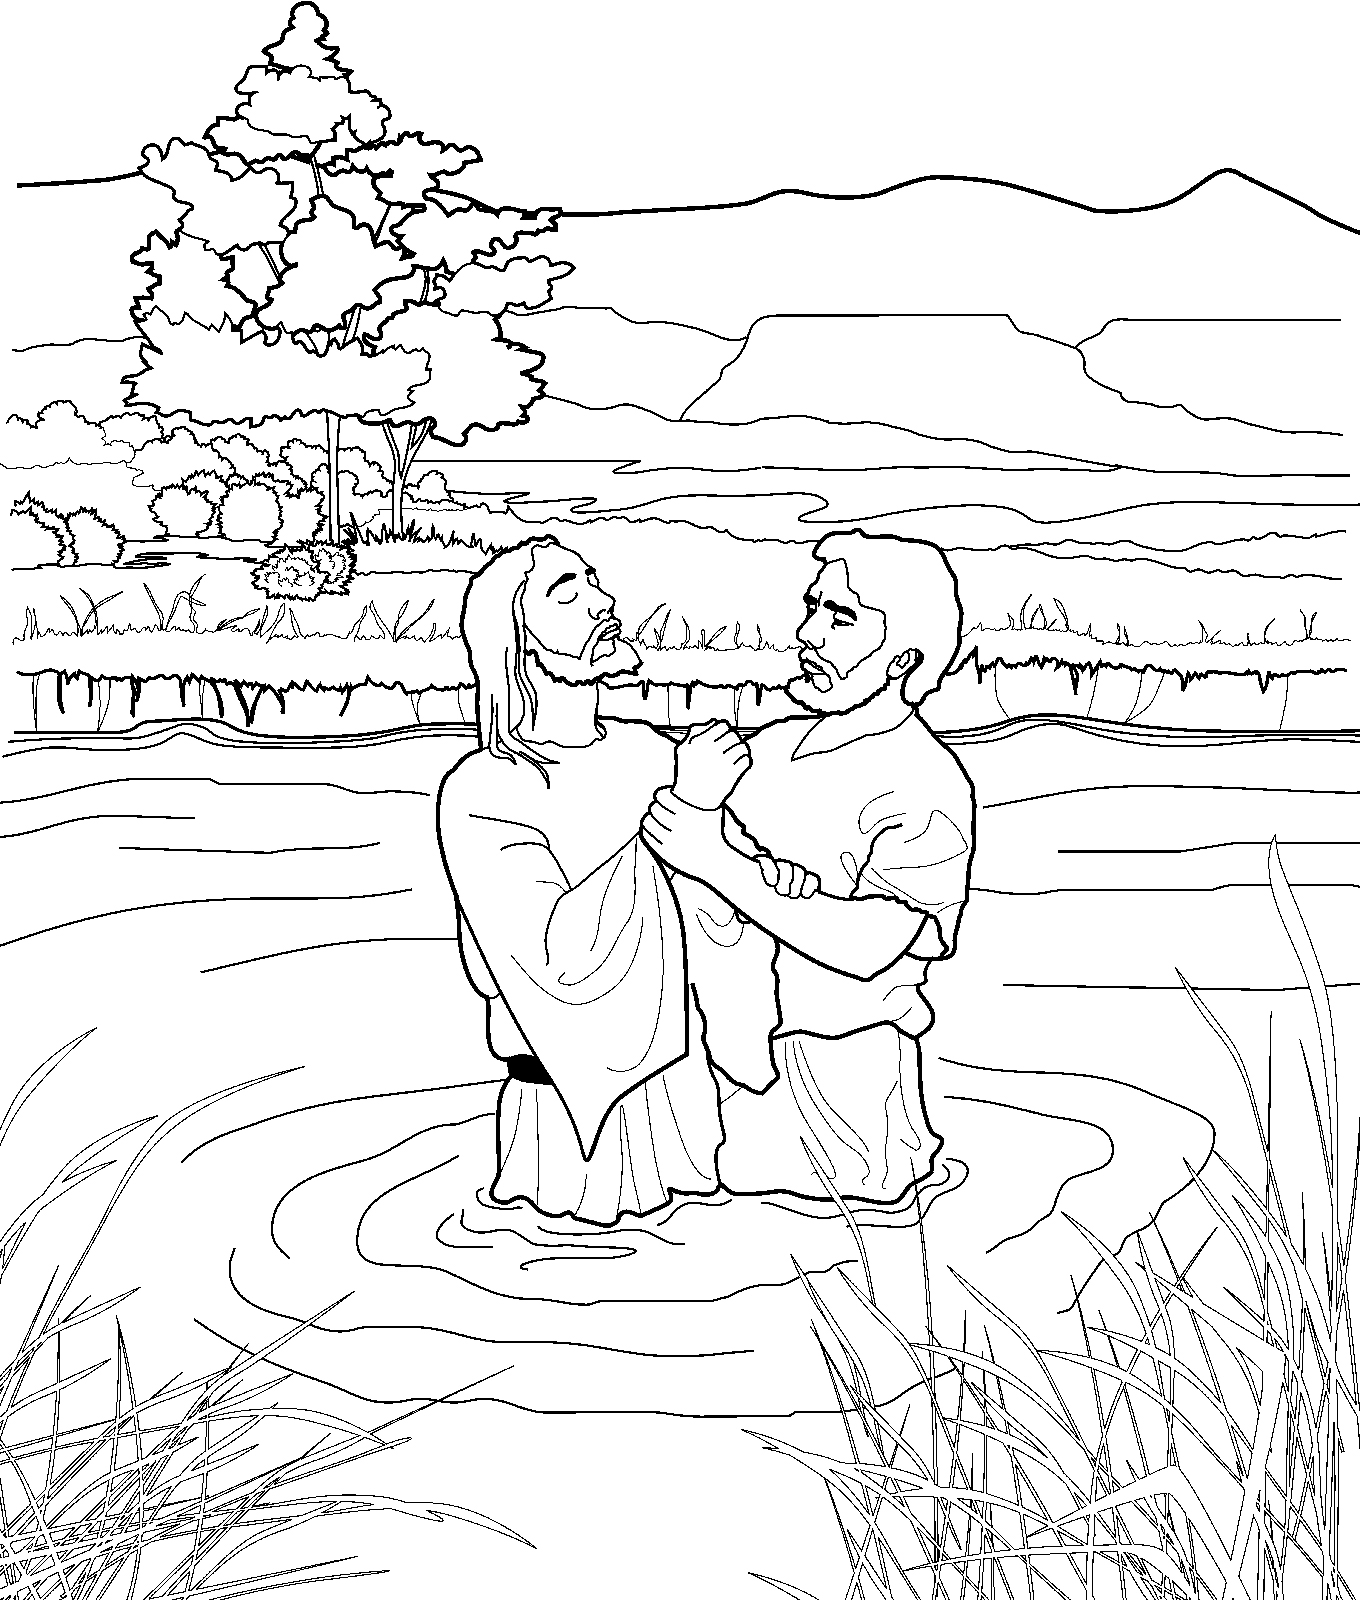 Baptism Coloring Pages Download 5f - Save it to your computer